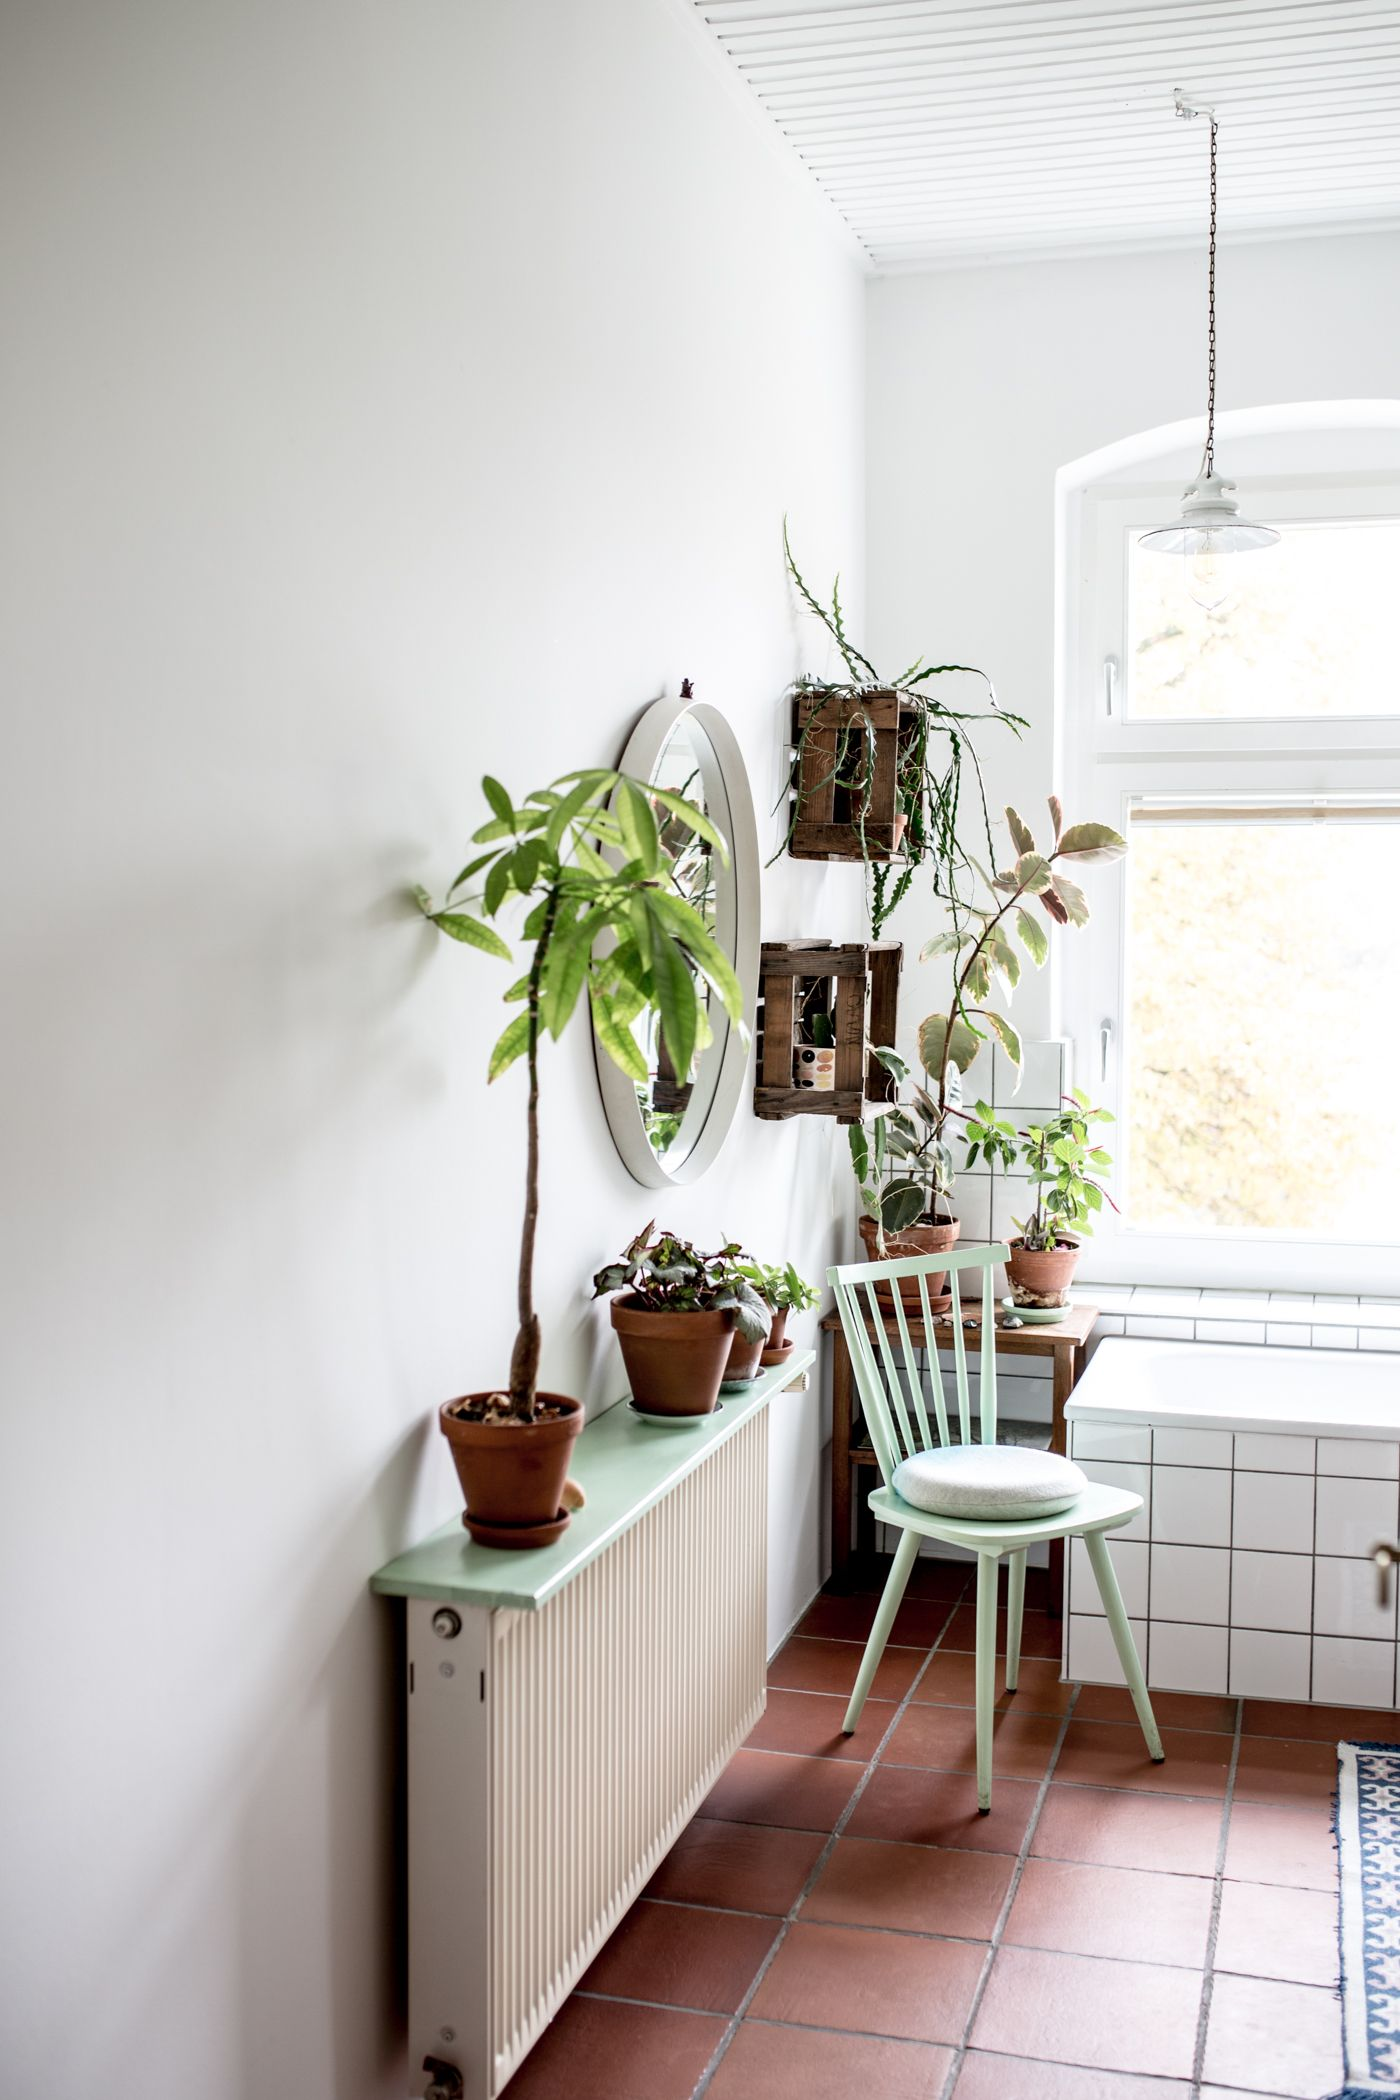 Badezimmer Interior Design With Plants | Badinspiration Lehof Bad ...